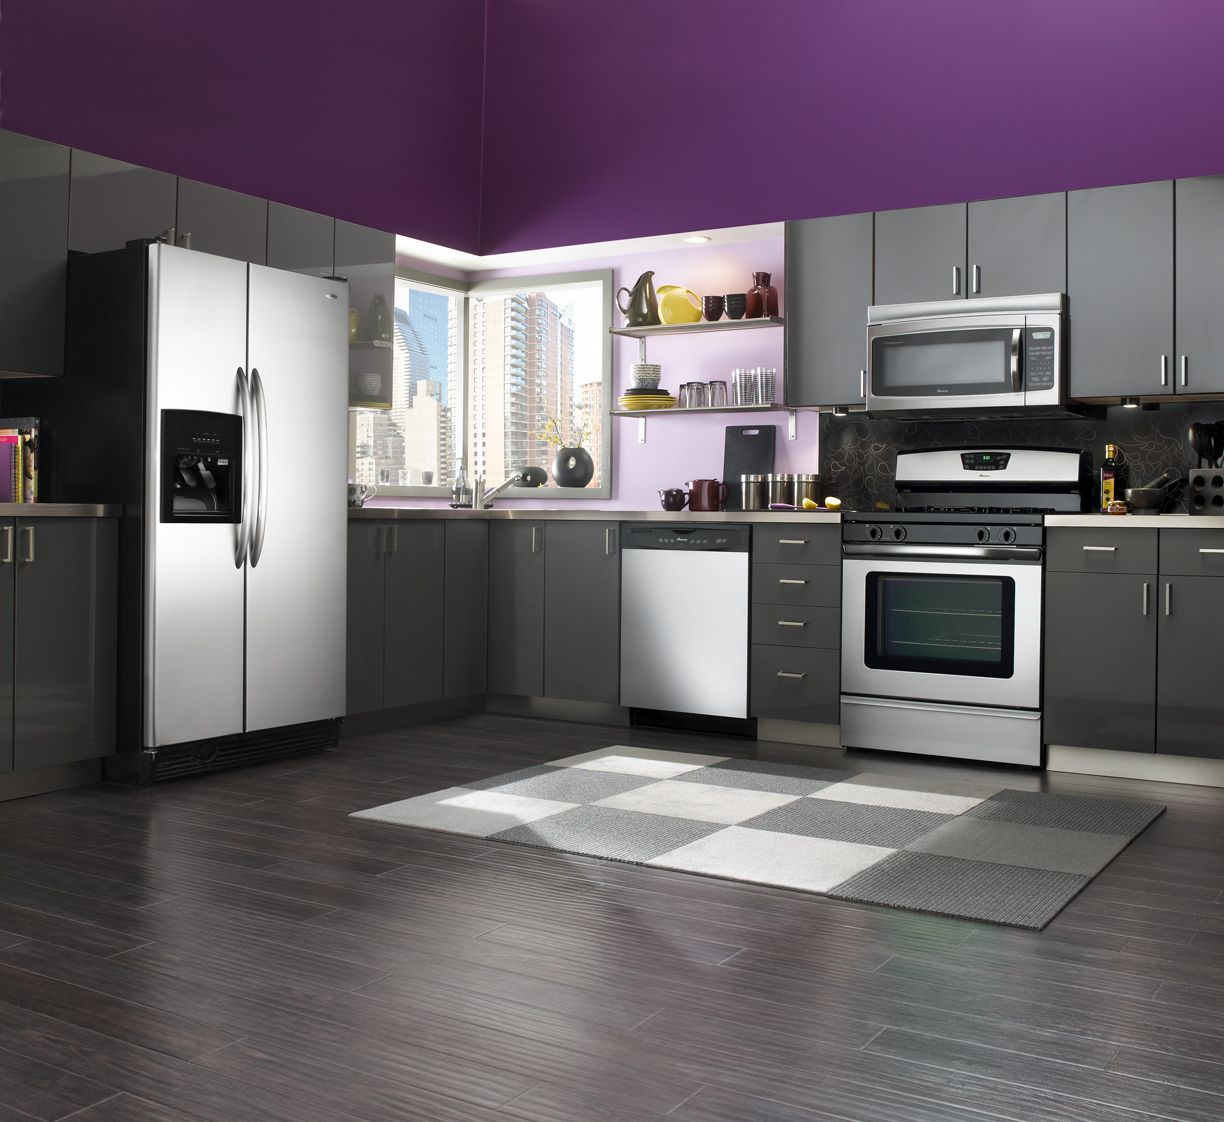 Beautiful Kitchen Designs In Purple Color : Enticing